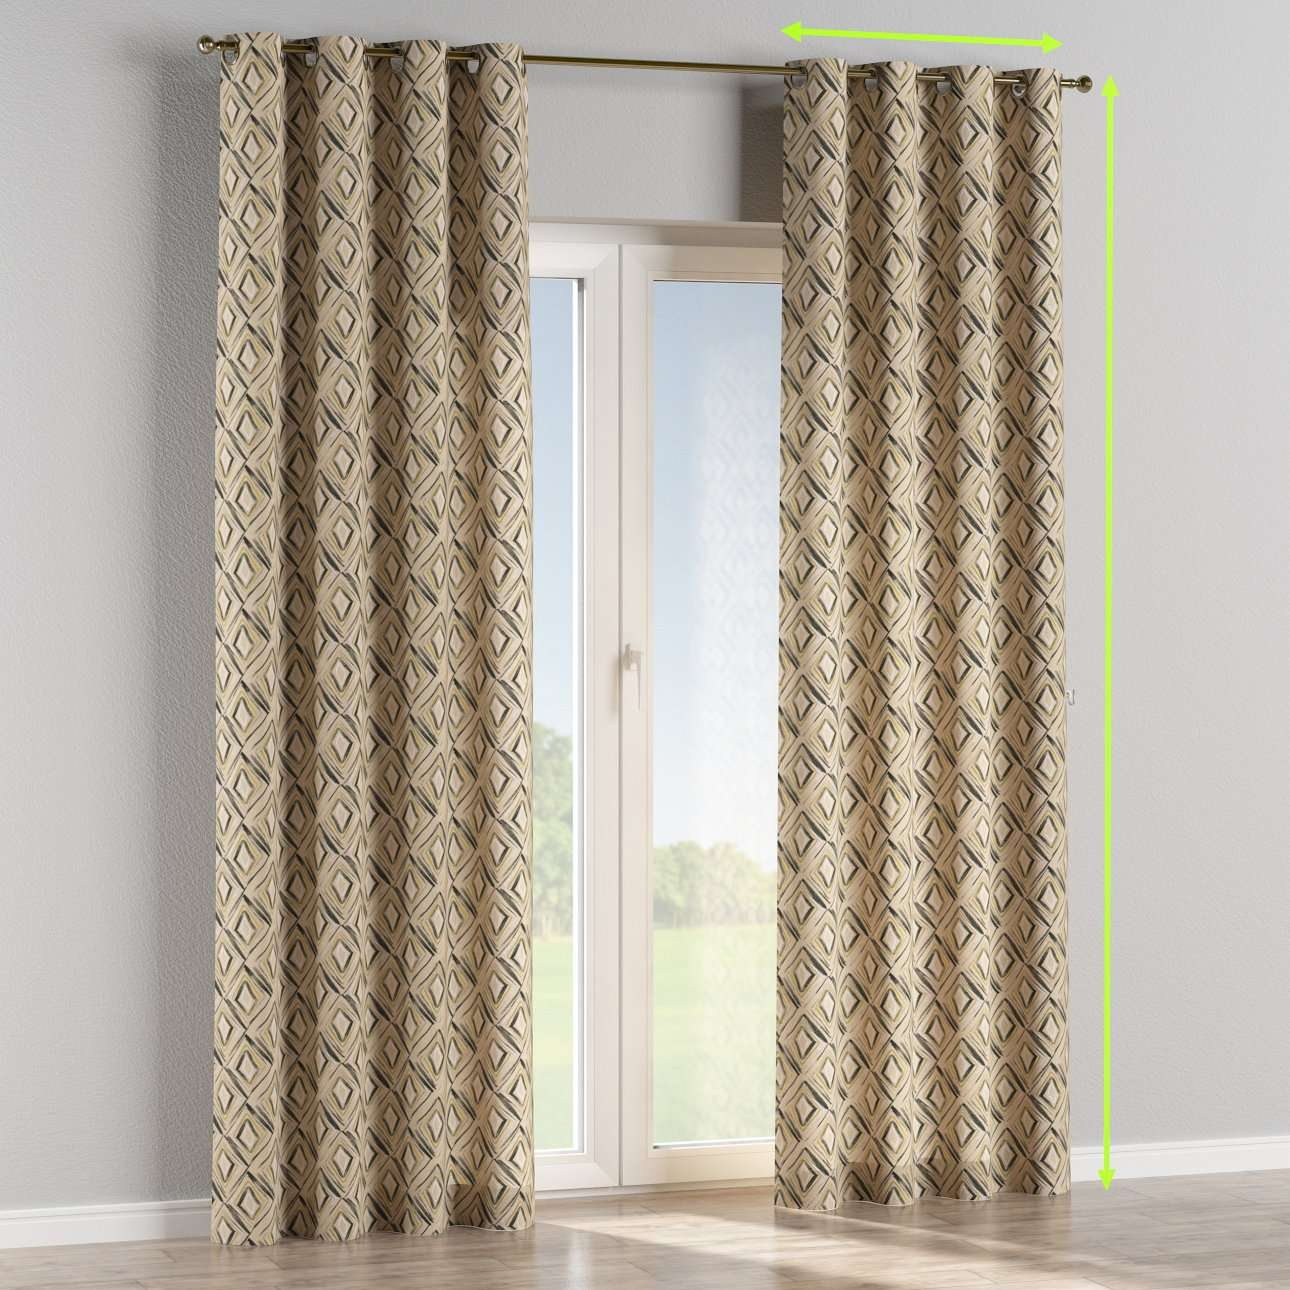 Eyelet lined curtains in collection Londres, fabric: 140-46